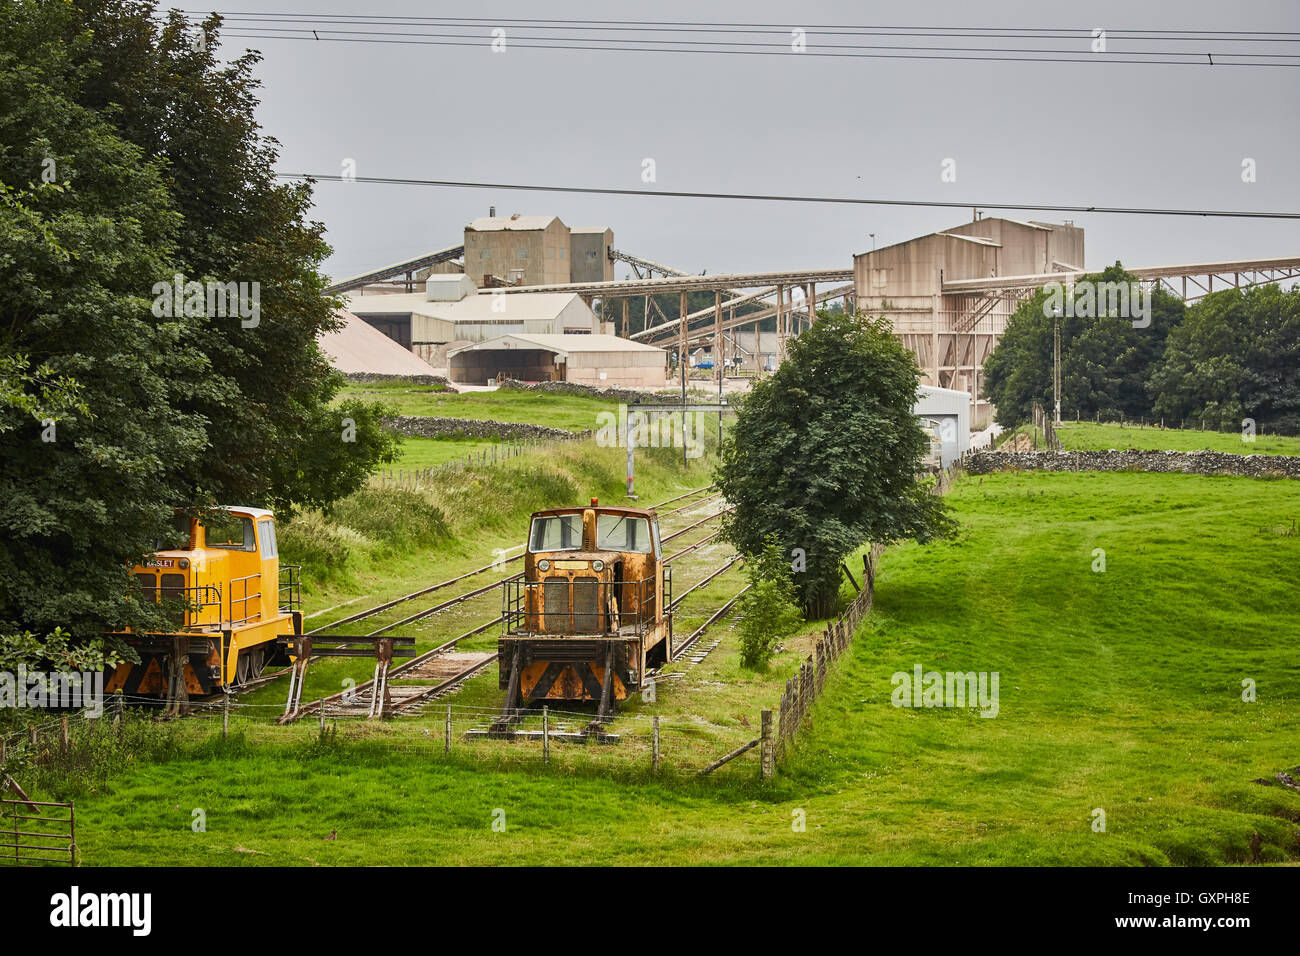 Shapfell Limestone Quarries shunters   Carlisle, Cumbria Raw materials lime Shap Penrith quarry manufacturing Factory - Stock Image